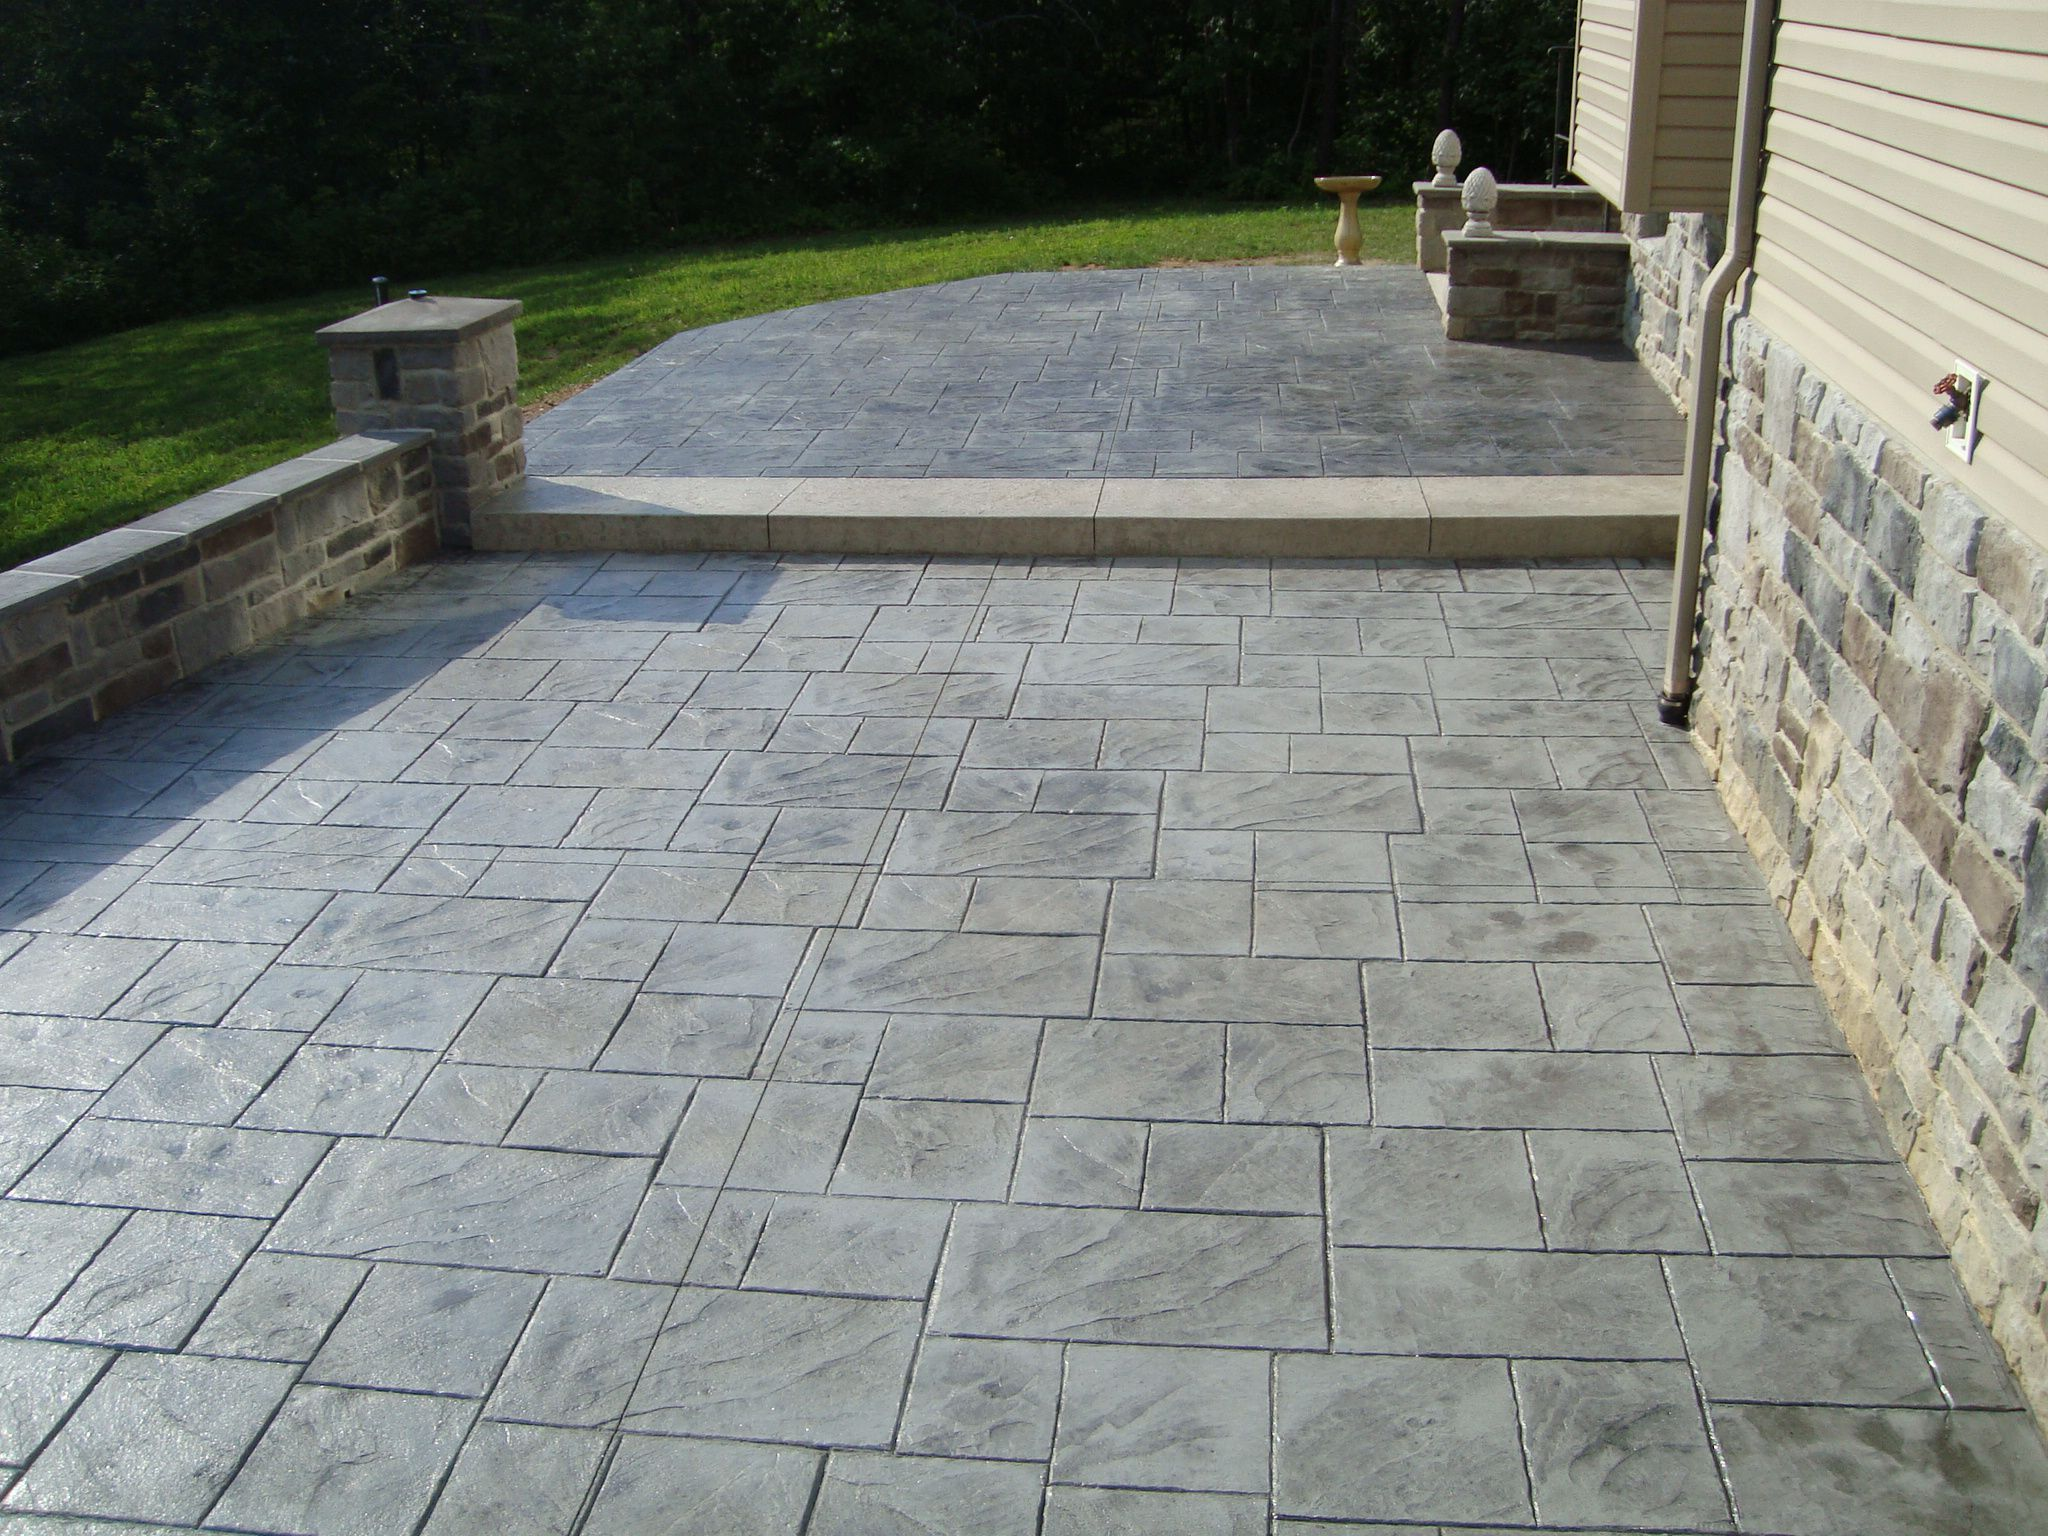 Minimalist Details on Stamped Concrete Patio near Retaining Wall